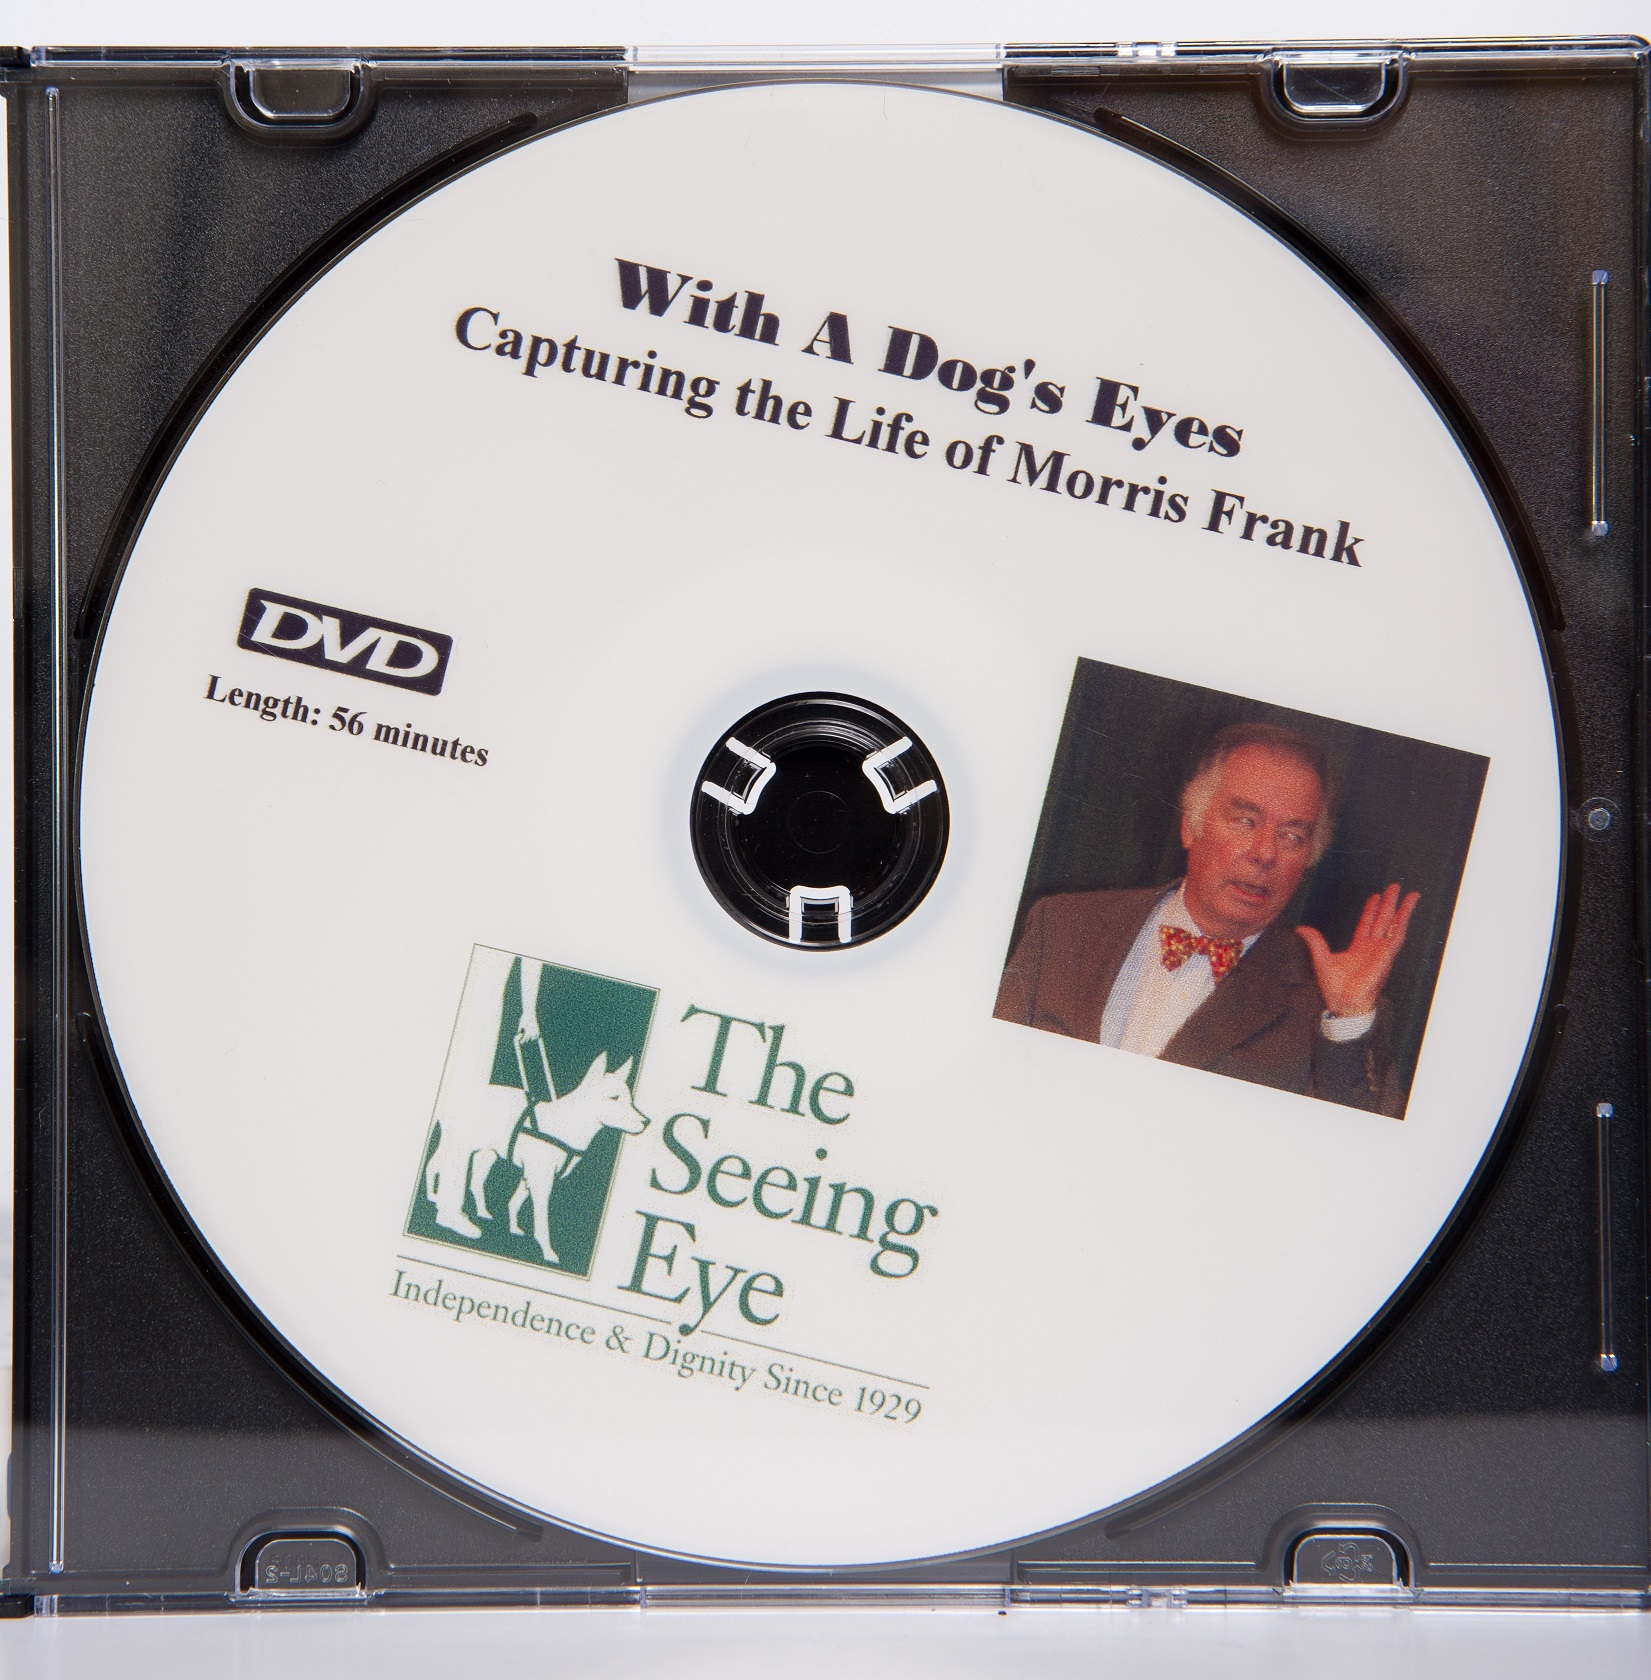 With a Dog's Eyes DVD